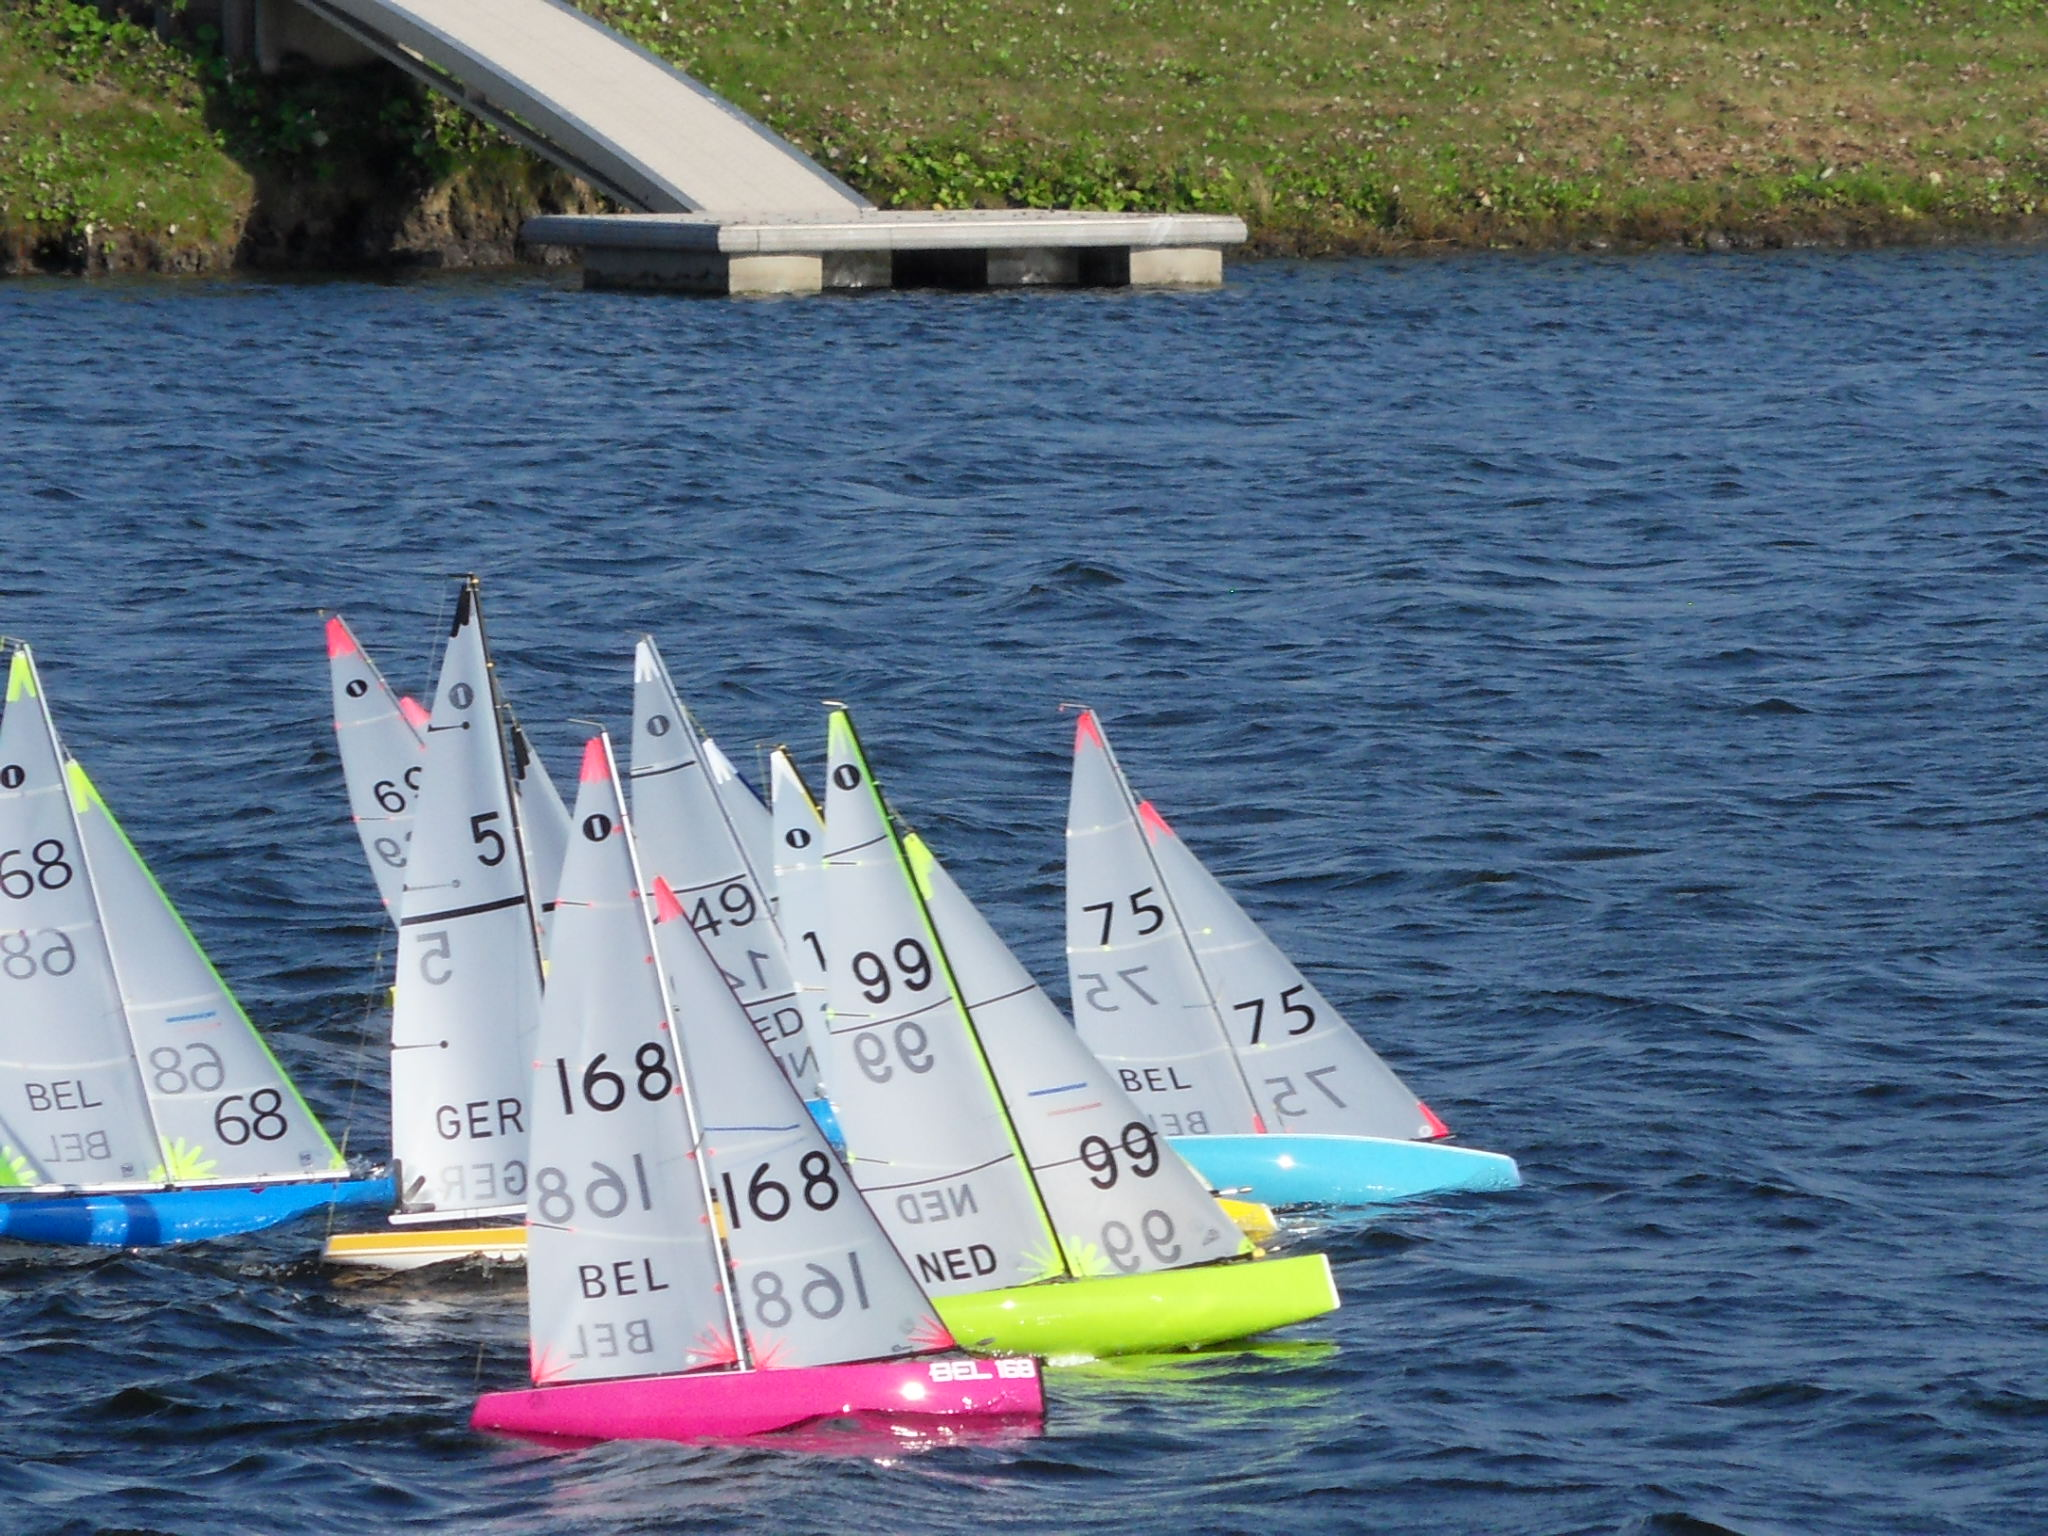 Blubberplas regatta